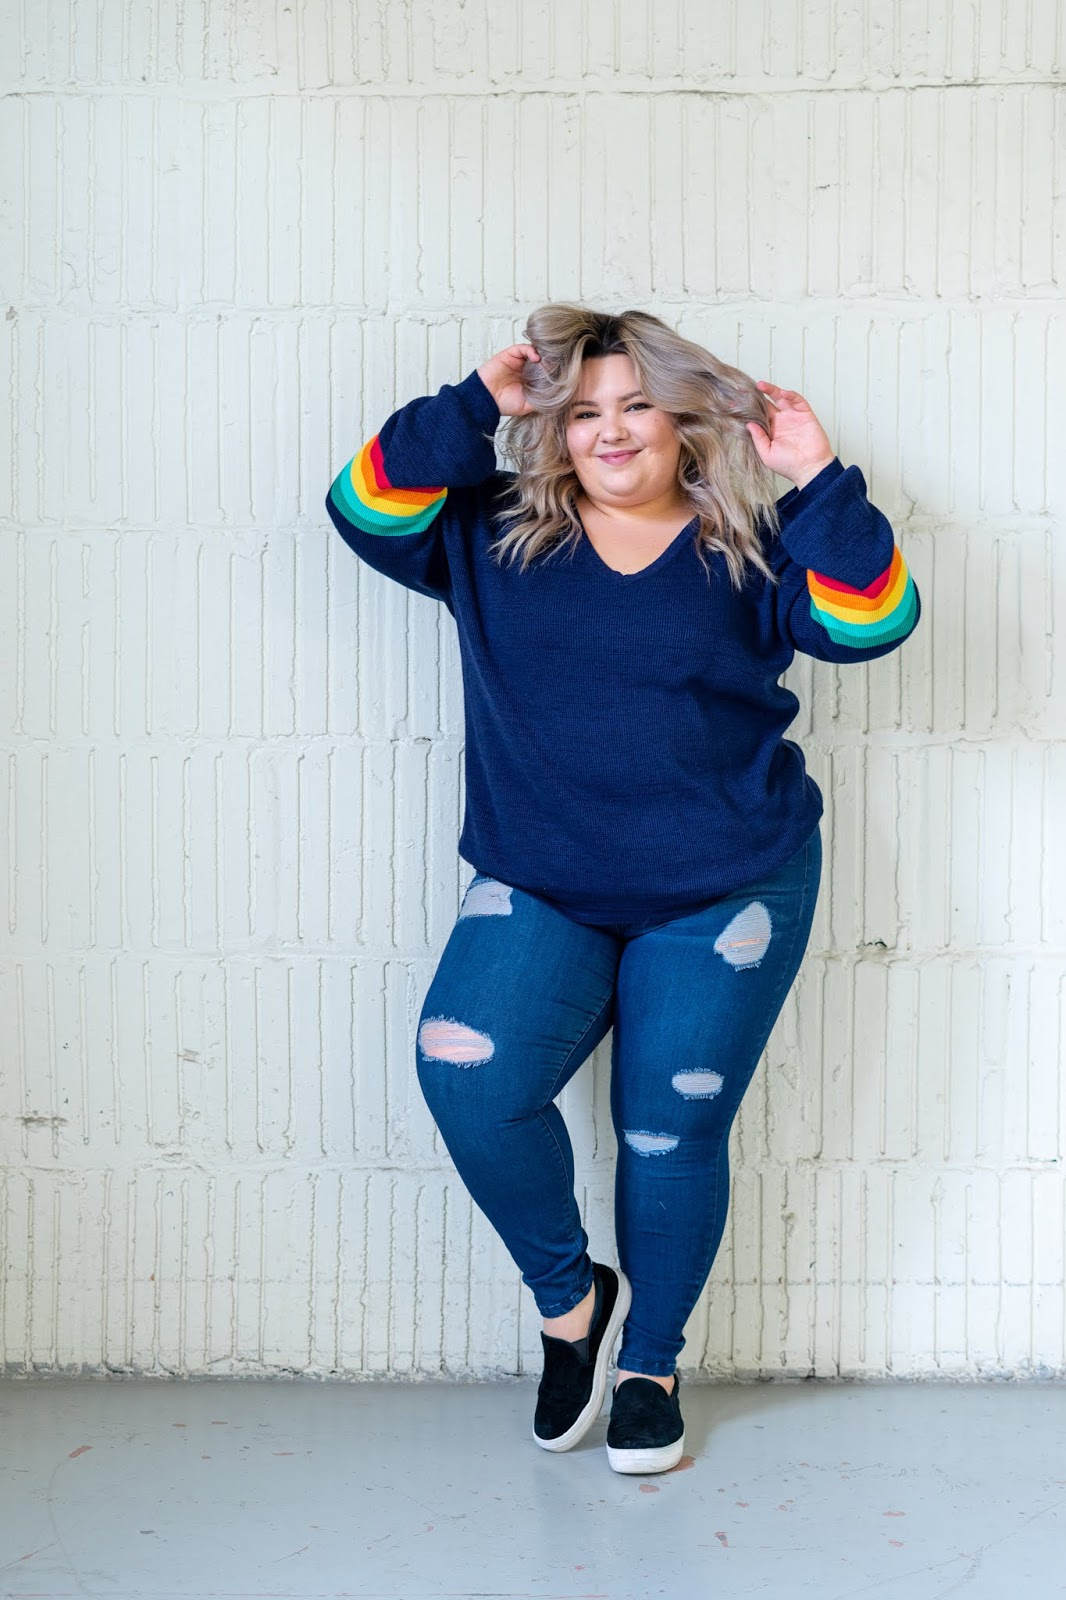 Chicago Plus Size Petite Fashion Blogger and model Natalie Craig, of Natalie in the City, compares Stitch Fix and Dia & Co styling services to find the best one for plus sizes.